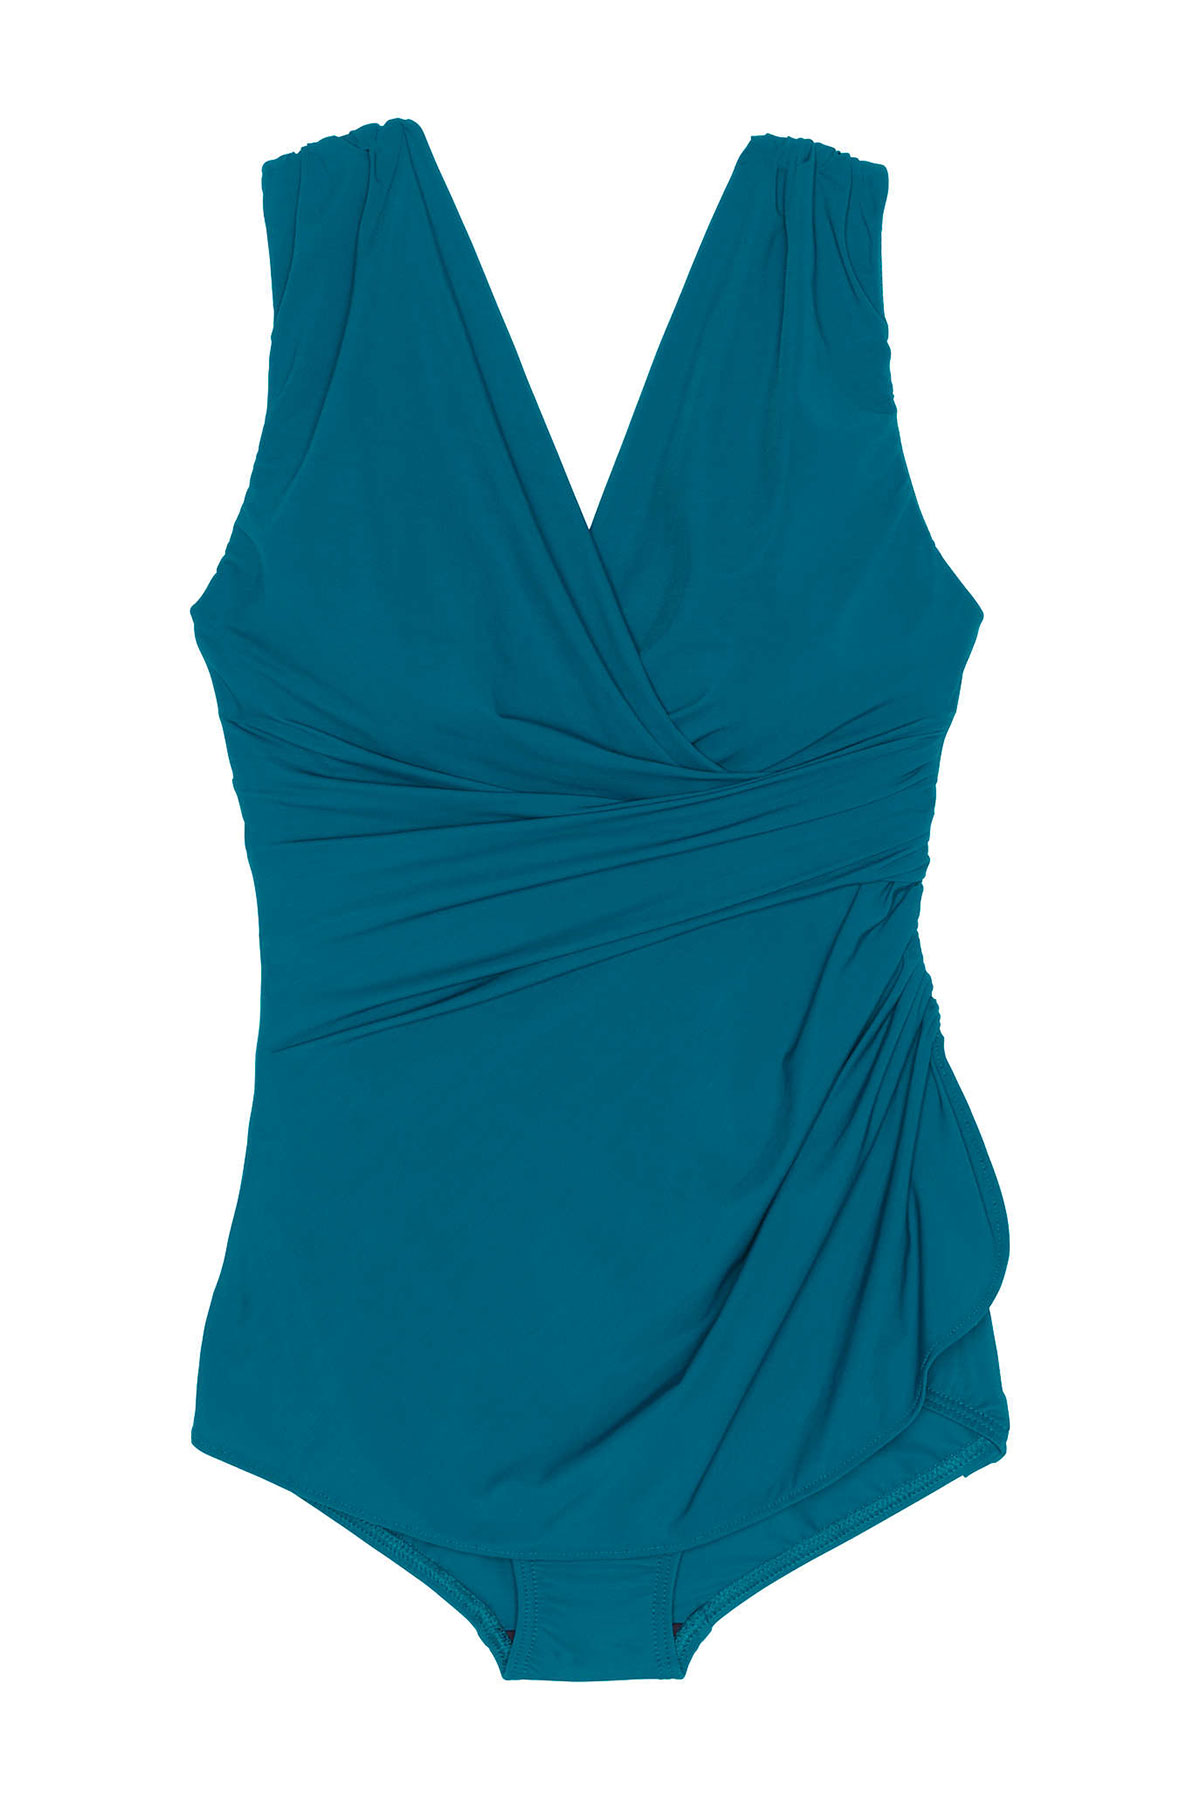 Lands' End Slender Tunic One-Piece Swimsuit